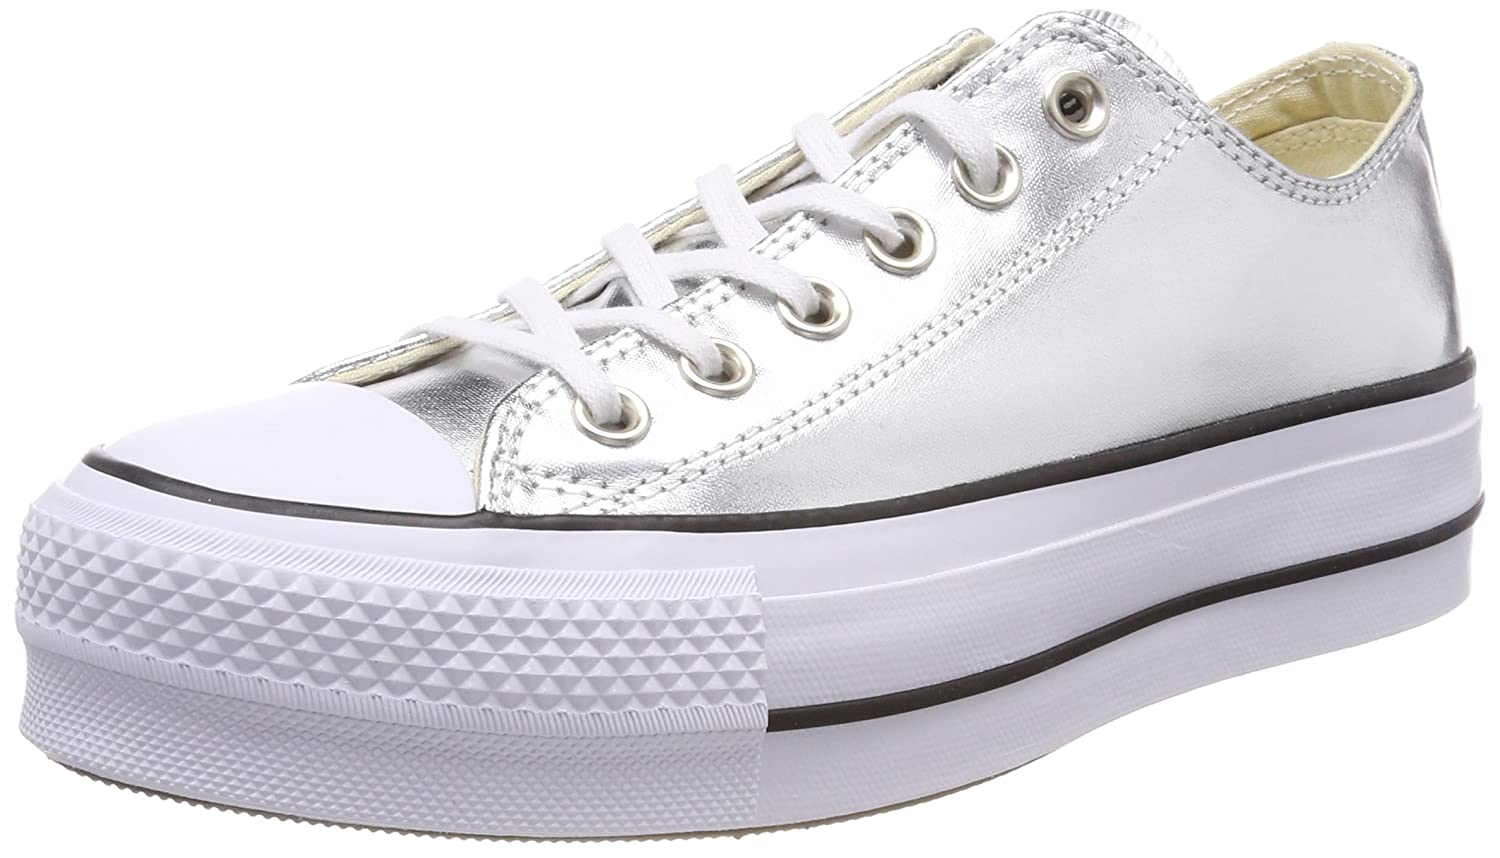 Converse Women's Chuck Taylor All Star Lift Ox Casual Shoe B073C67V6Z 10.5 B(M) US|Silver/Black/White